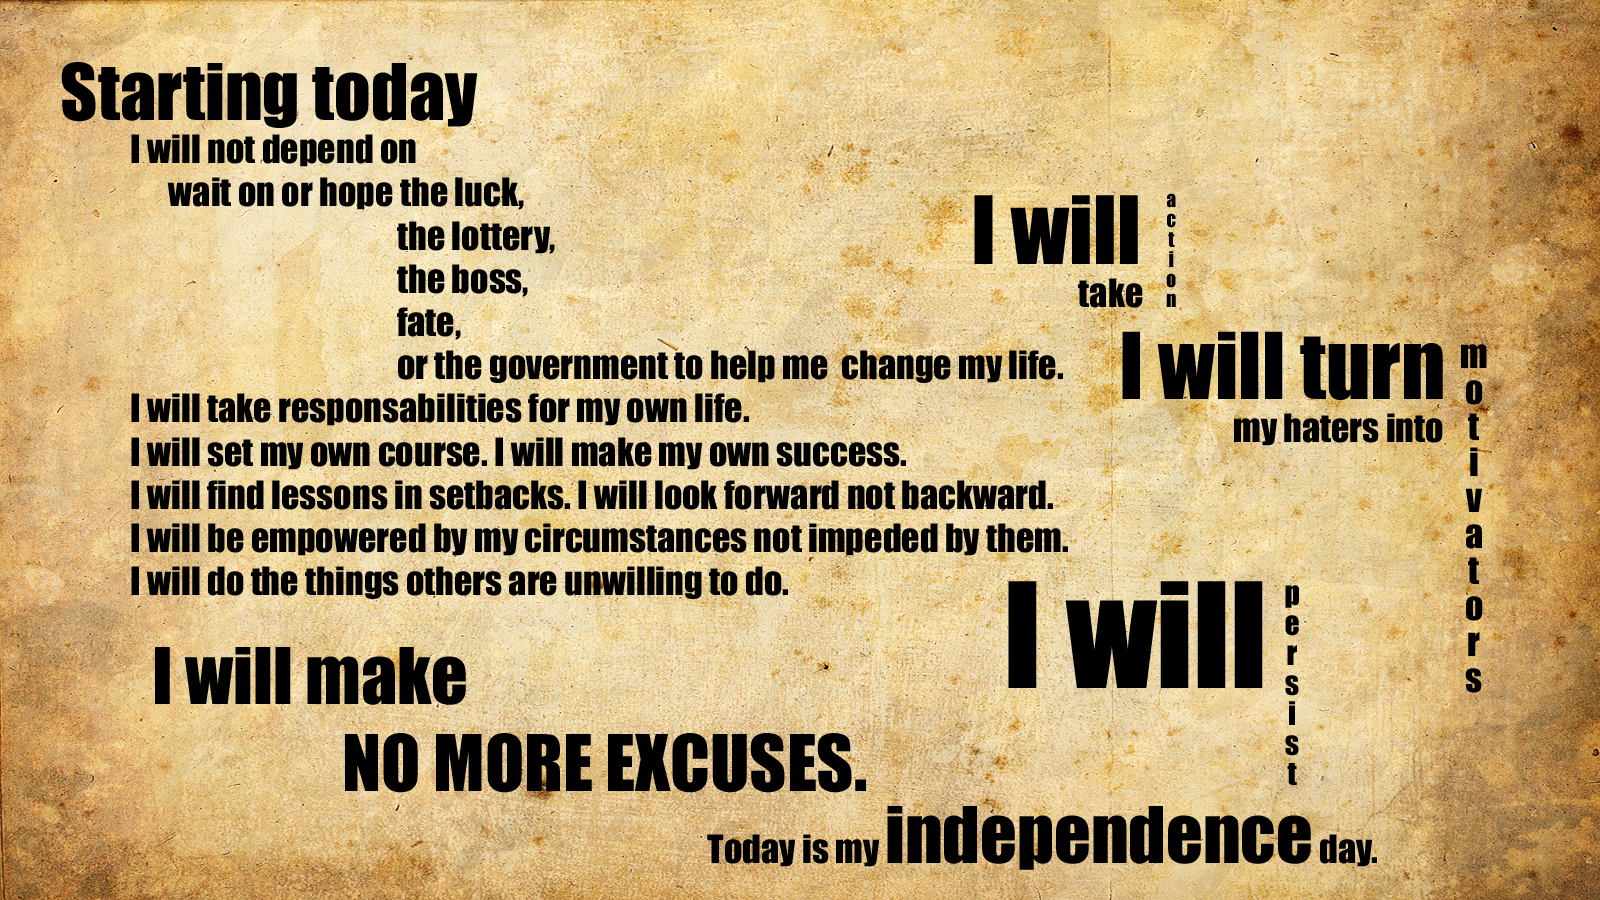 Inspirational Thought For The Day 15 August  Independence Day Motivational Thoughts Inspirational